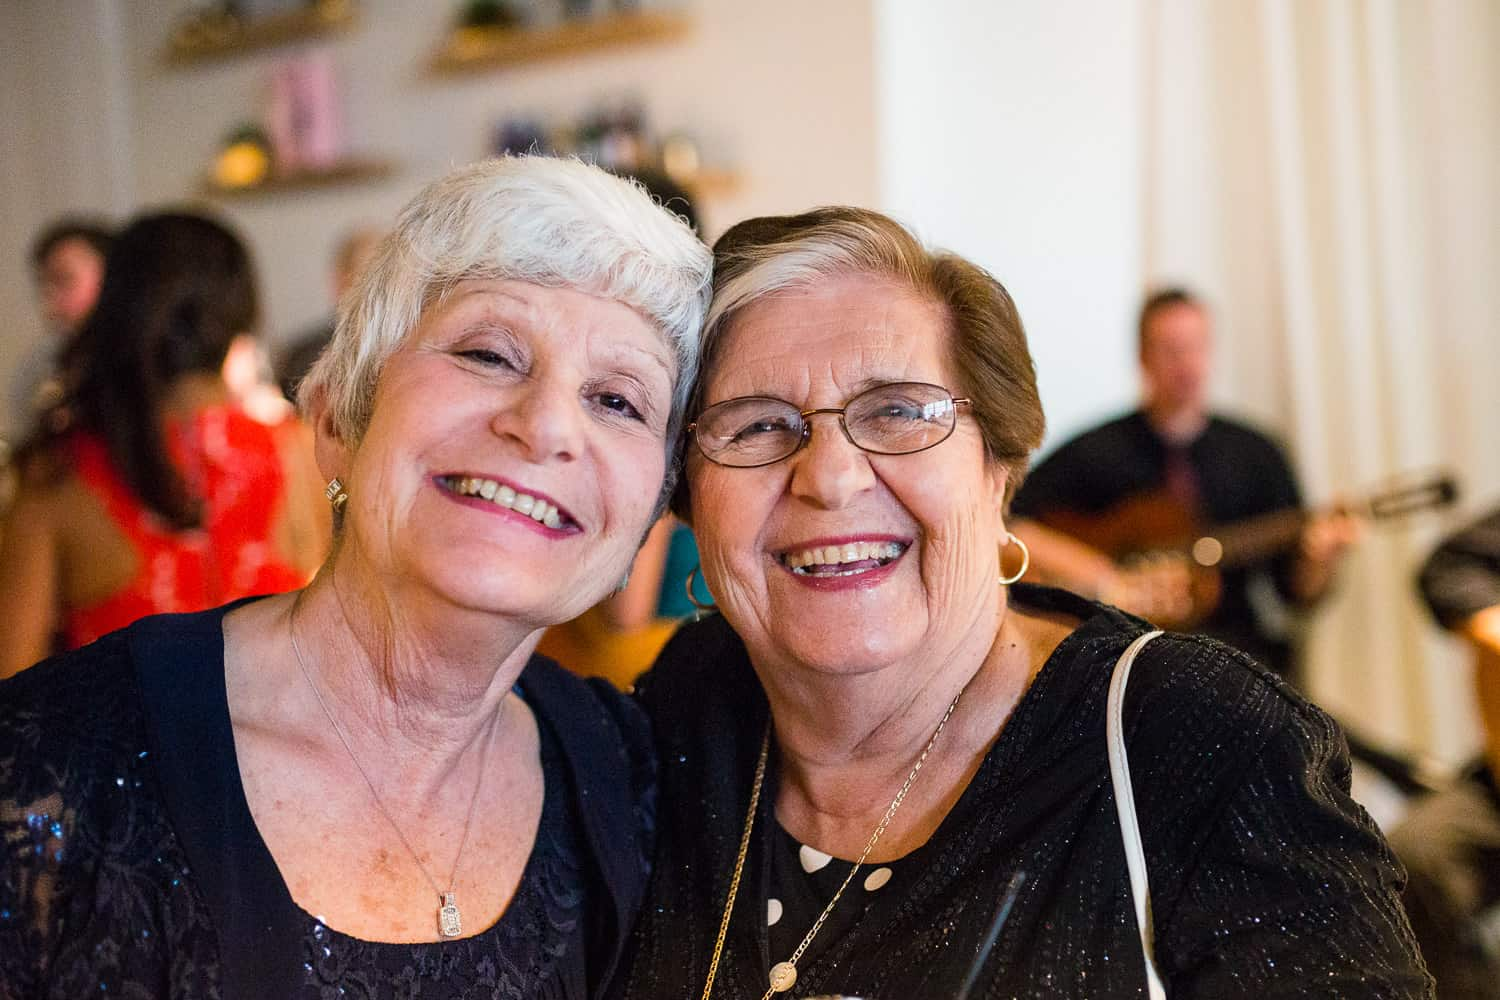 Two adorable ladies at a wedding at the Arbor Loft.